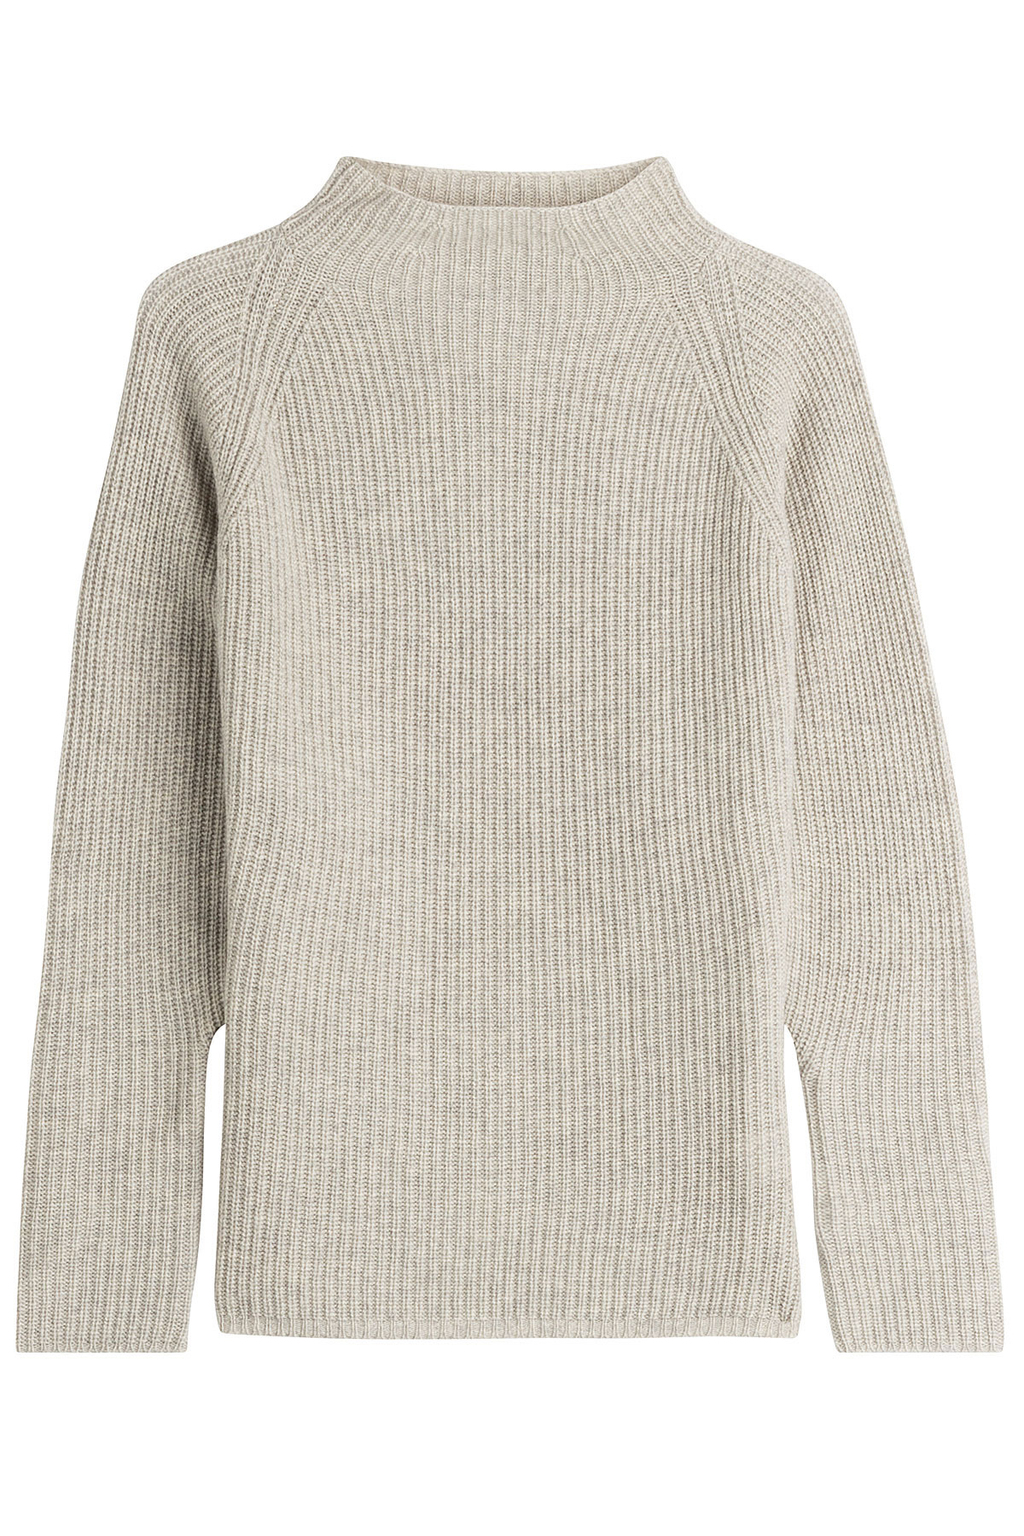 Wool Pullover With Cashmere - pattern: plain; neckline: high neck; style: standard; predominant colour: light grey; occasions: casual, creative work; length: standard; fibres: wool - mix; fit: loose; sleeve length: long sleeve; sleeve style: standard; texture group: knits/crochet; pattern type: knitted - big stitch; pattern size: standard; wardrobe: basic; season: a/w 2016